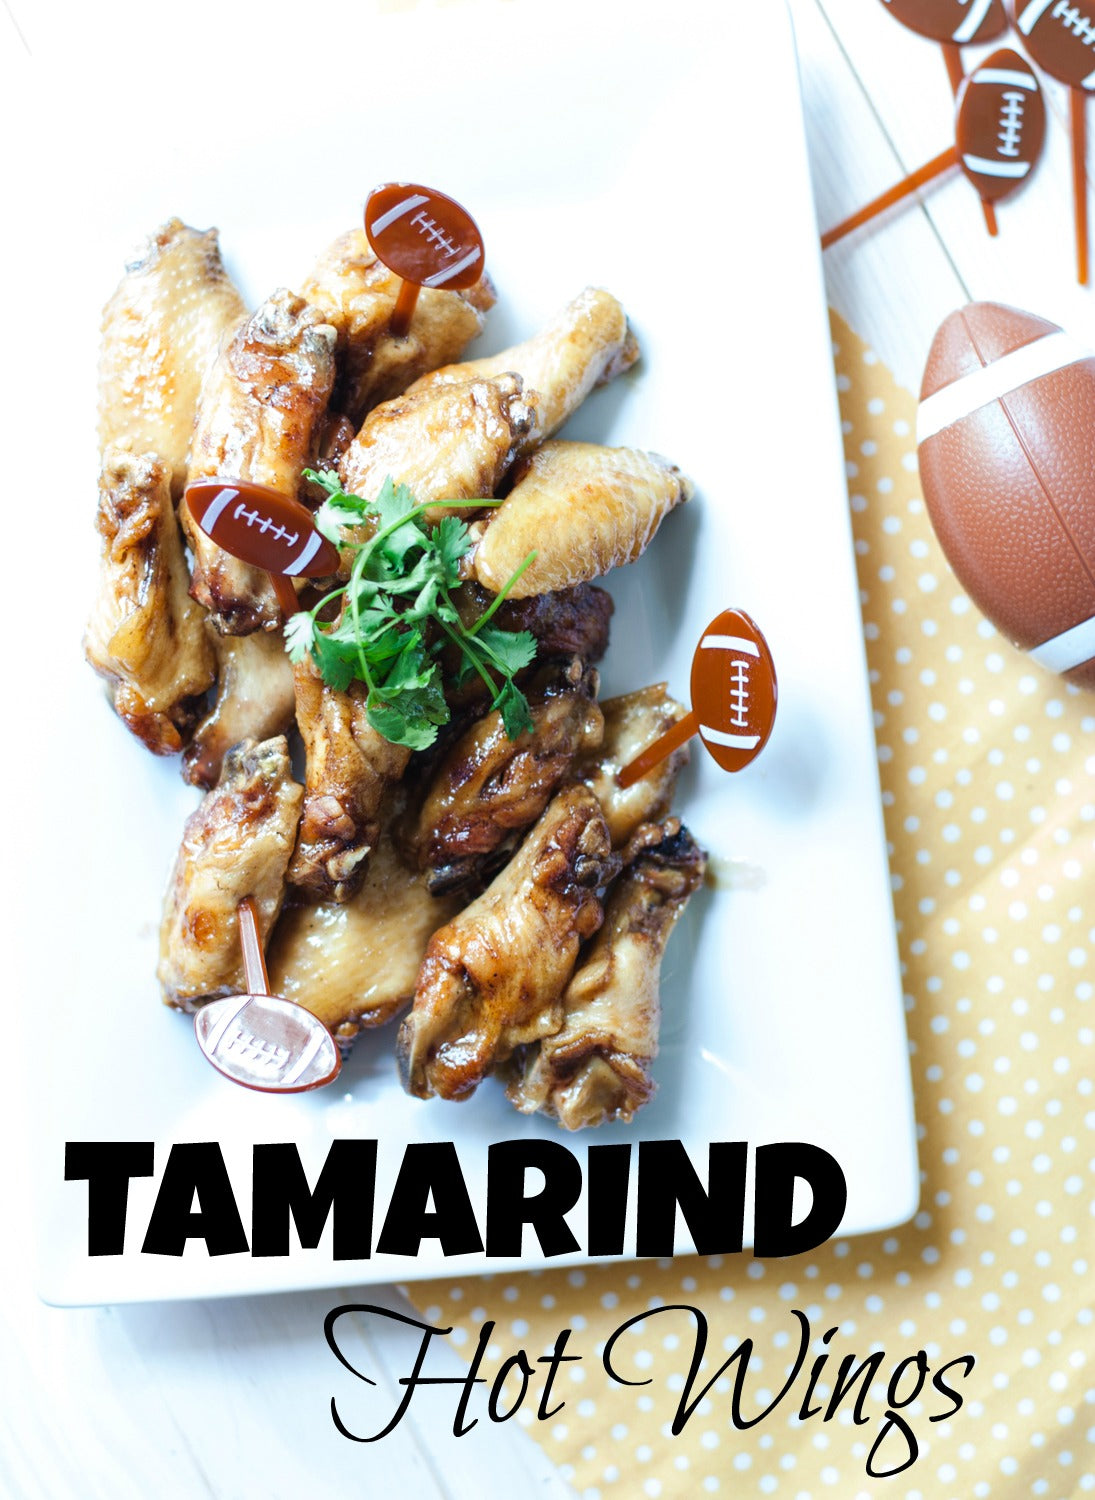 Tamarind Hot Wings for Game Day Snacks